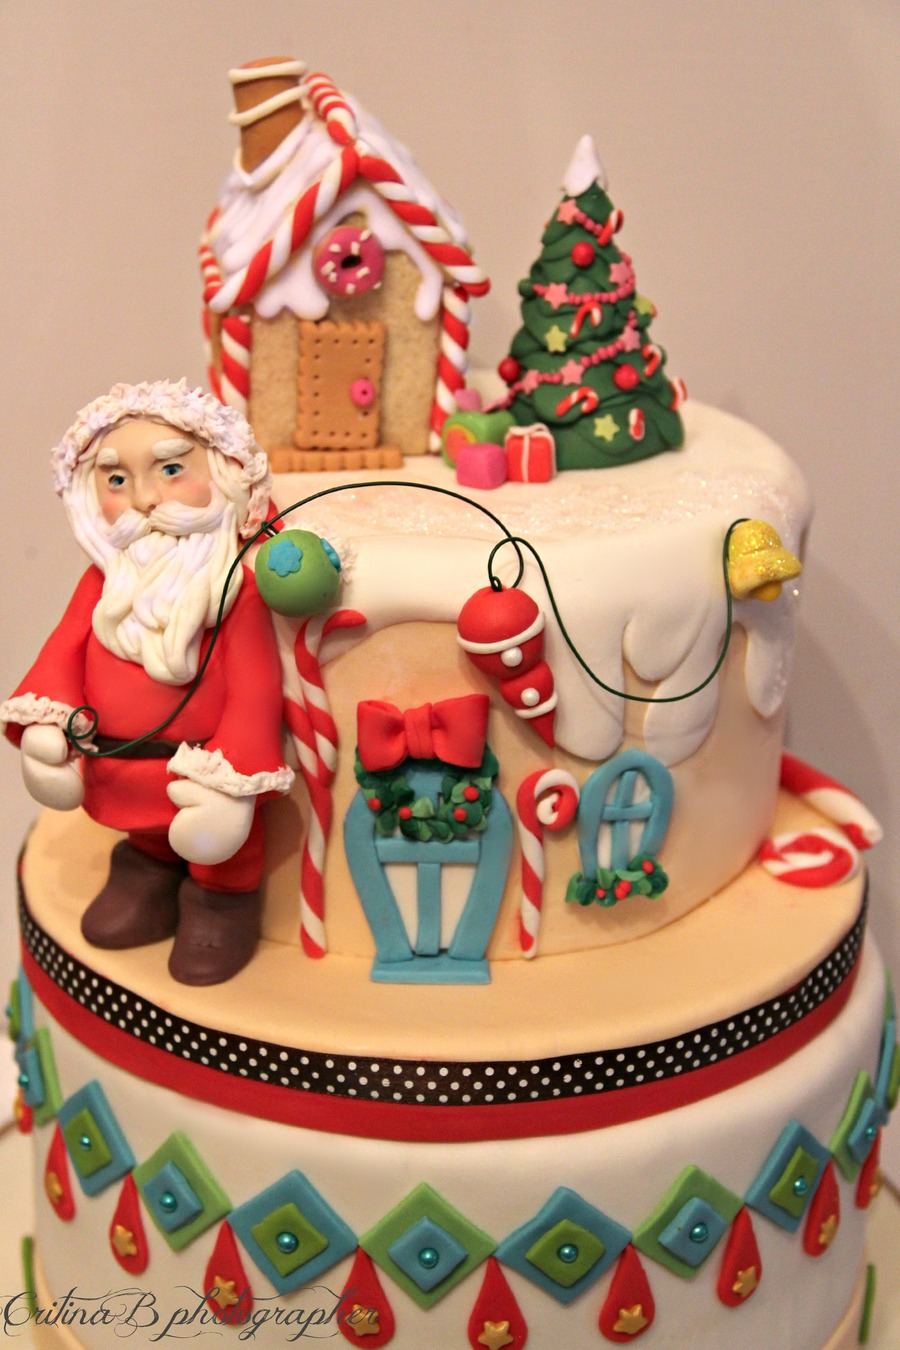 Santa's Magic Cake on Cake Central